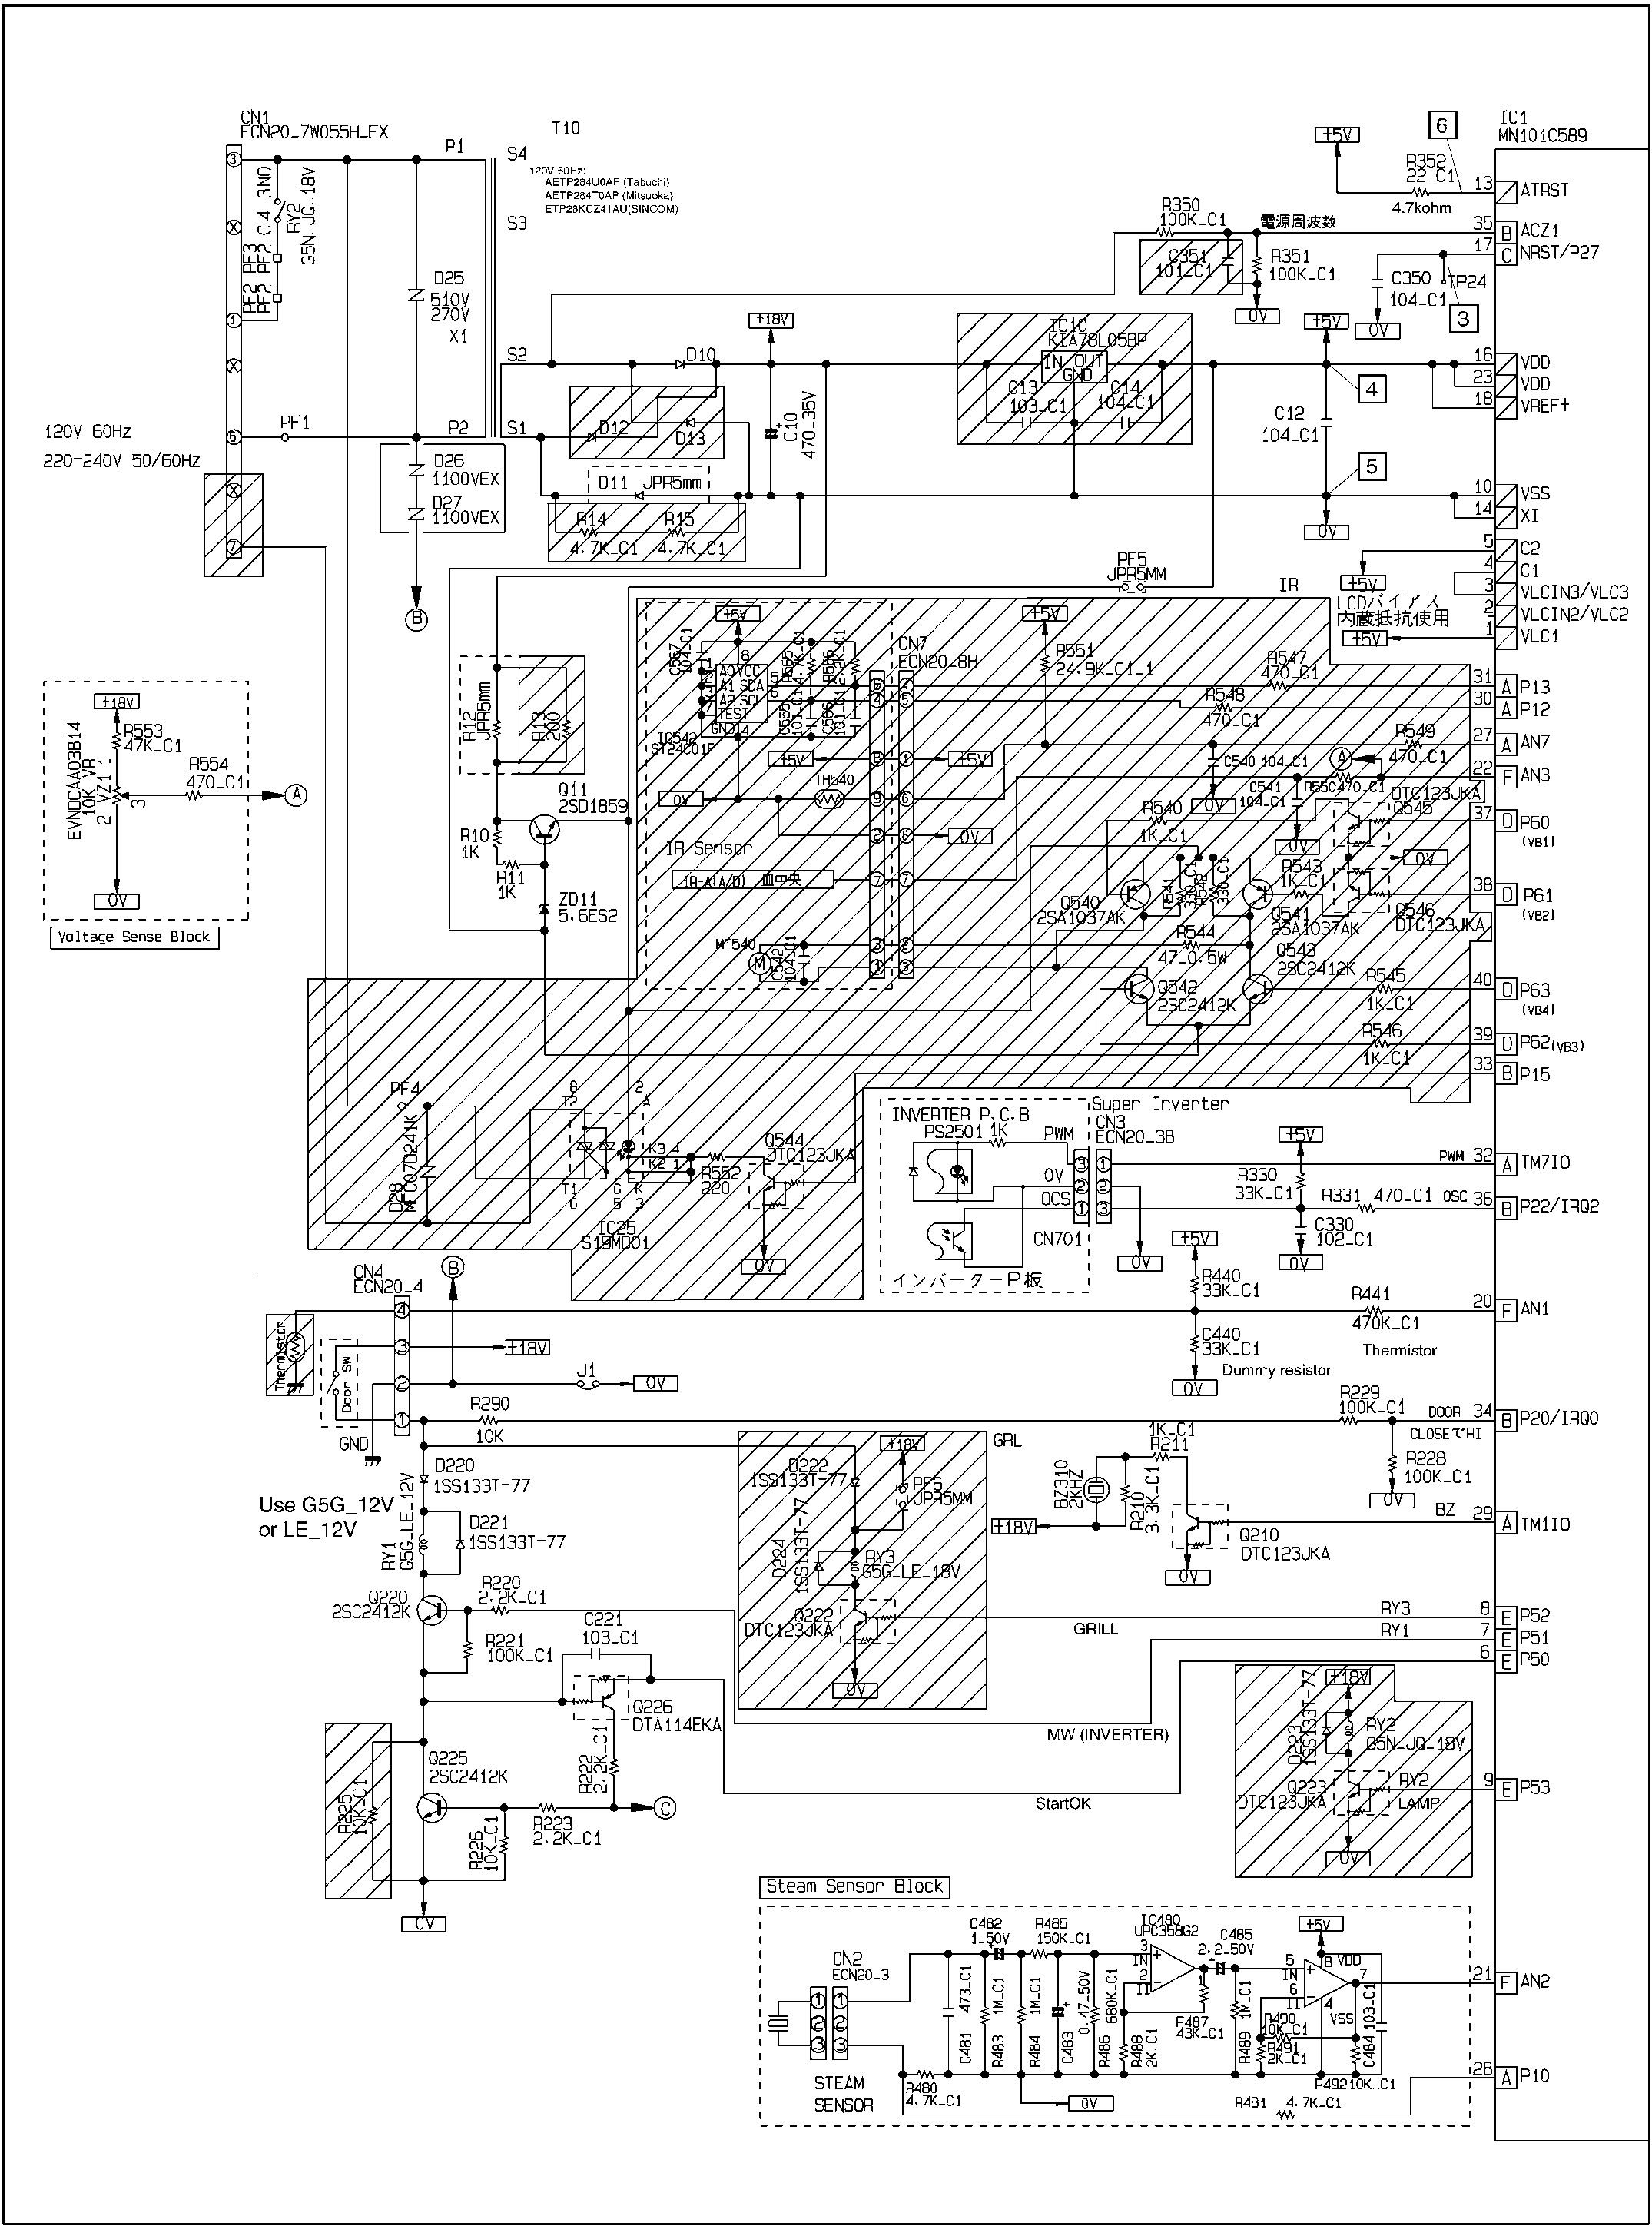 diagramas electricos automotrices gratis